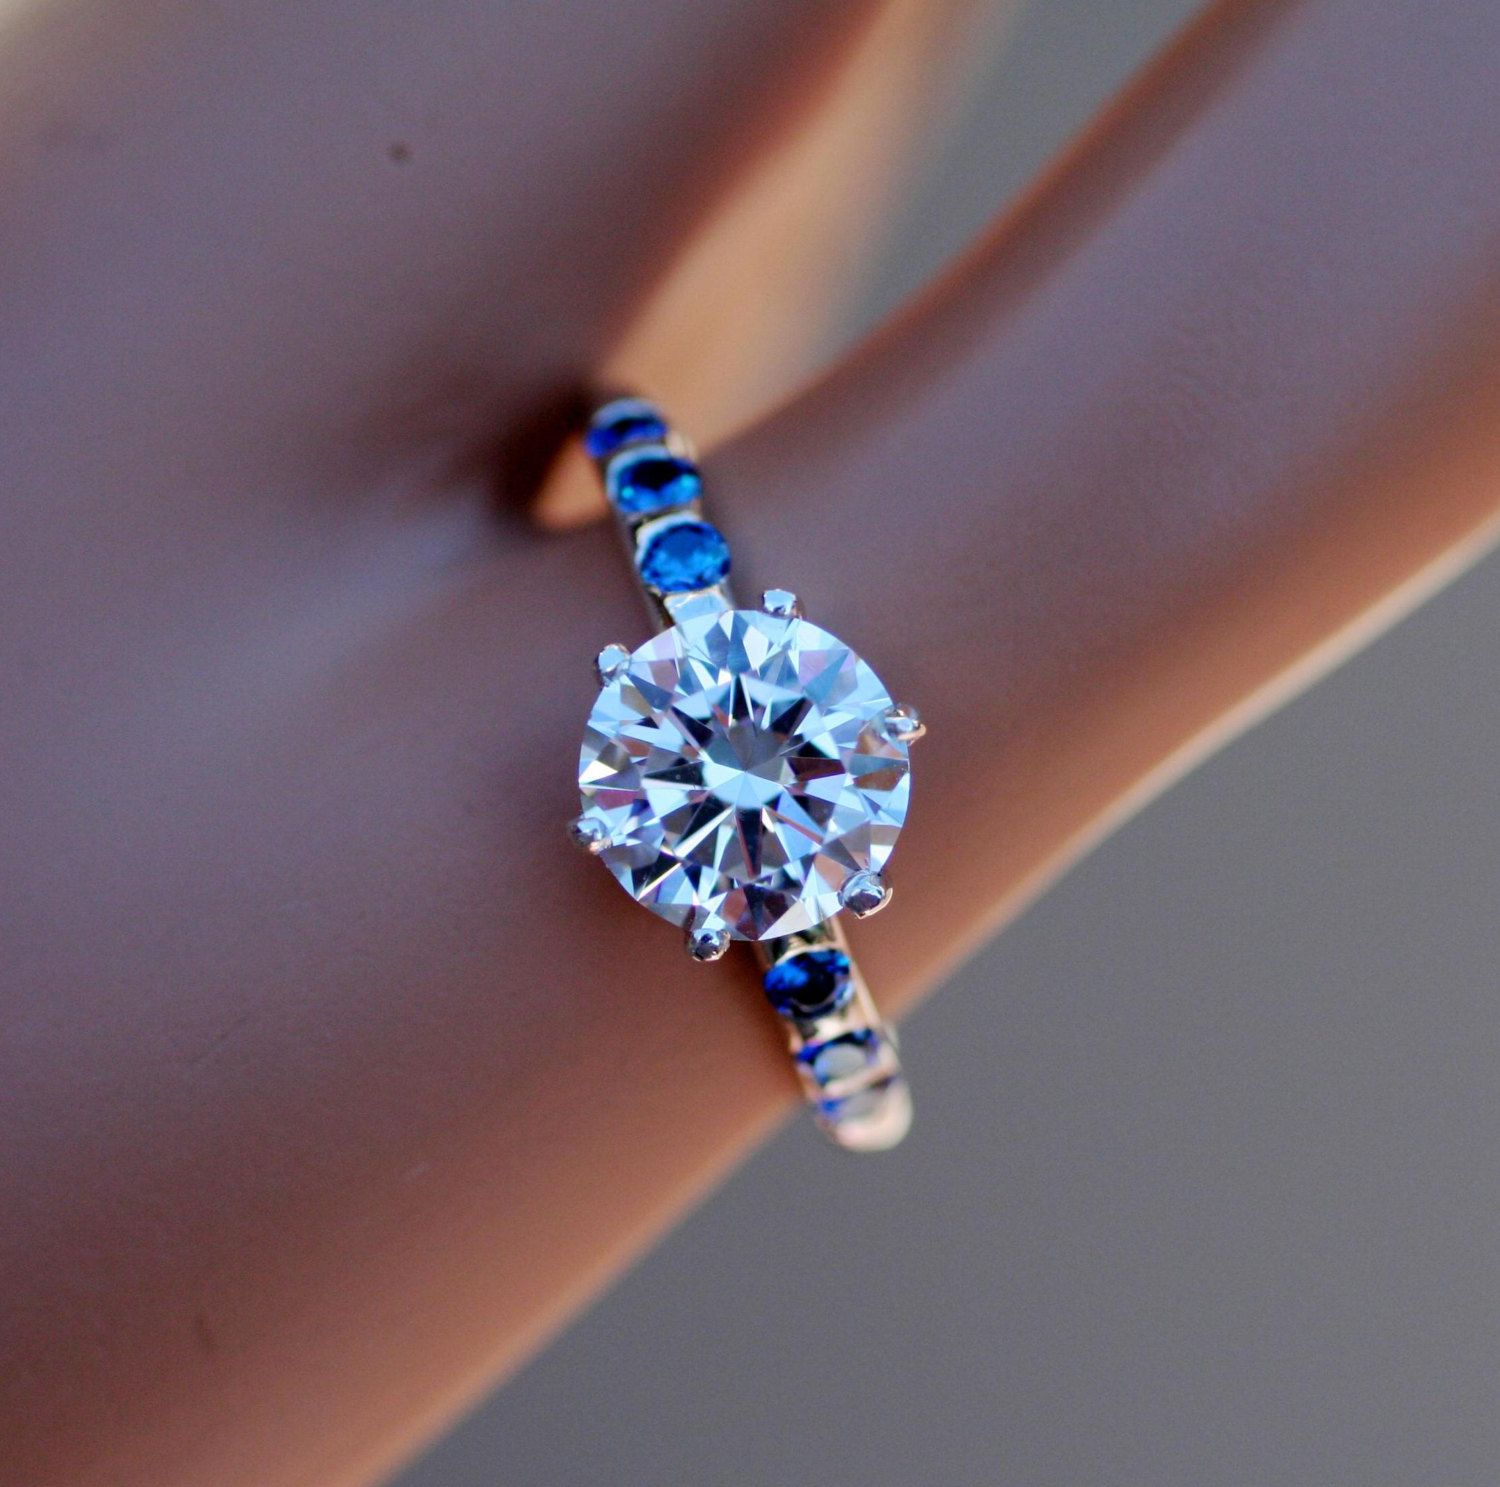 BRILLIANT BLING! Colorless with Ocean Blue Cubic Zirconia Solid Silver Ring by ORlove on Etsy https://www.etsy.com/listing/250678780/brilliant-bling-colorless-with-ocean